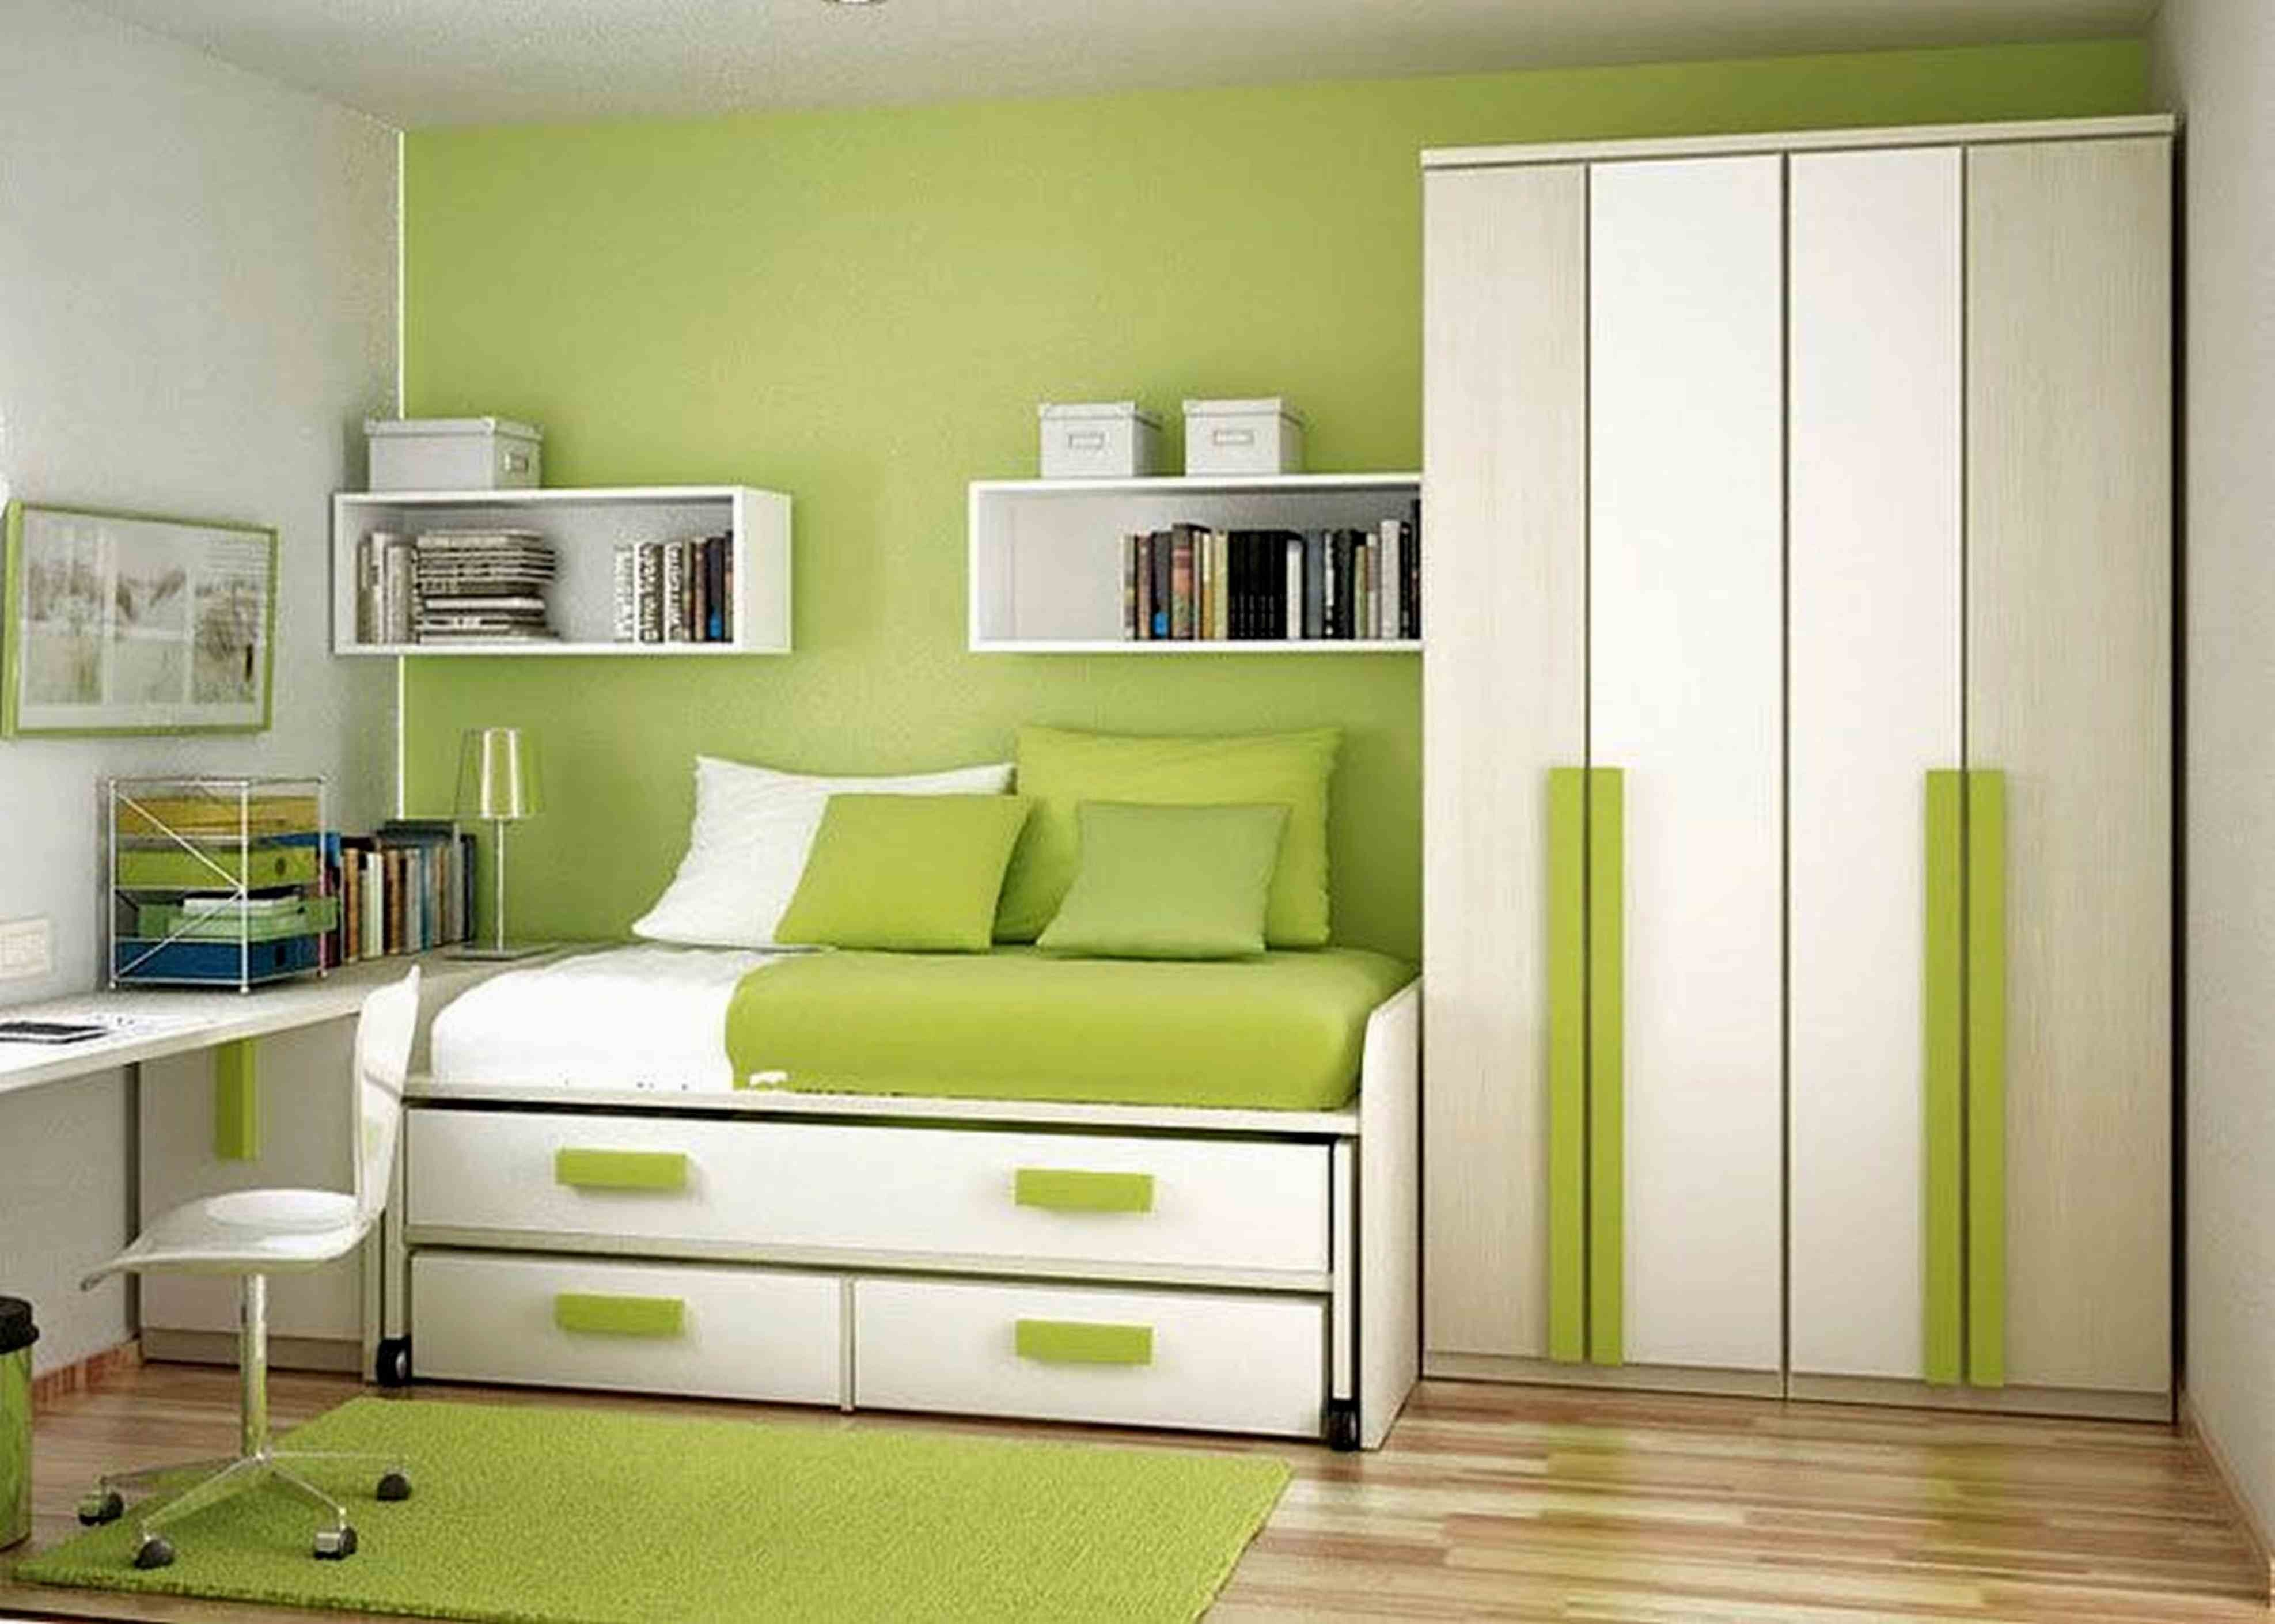 Bedroom Ideas For Small Rooms 10 X 11  Small Bedroom  Pinterest Best Bedroom Interior Design For Small Rooms Design Ideas